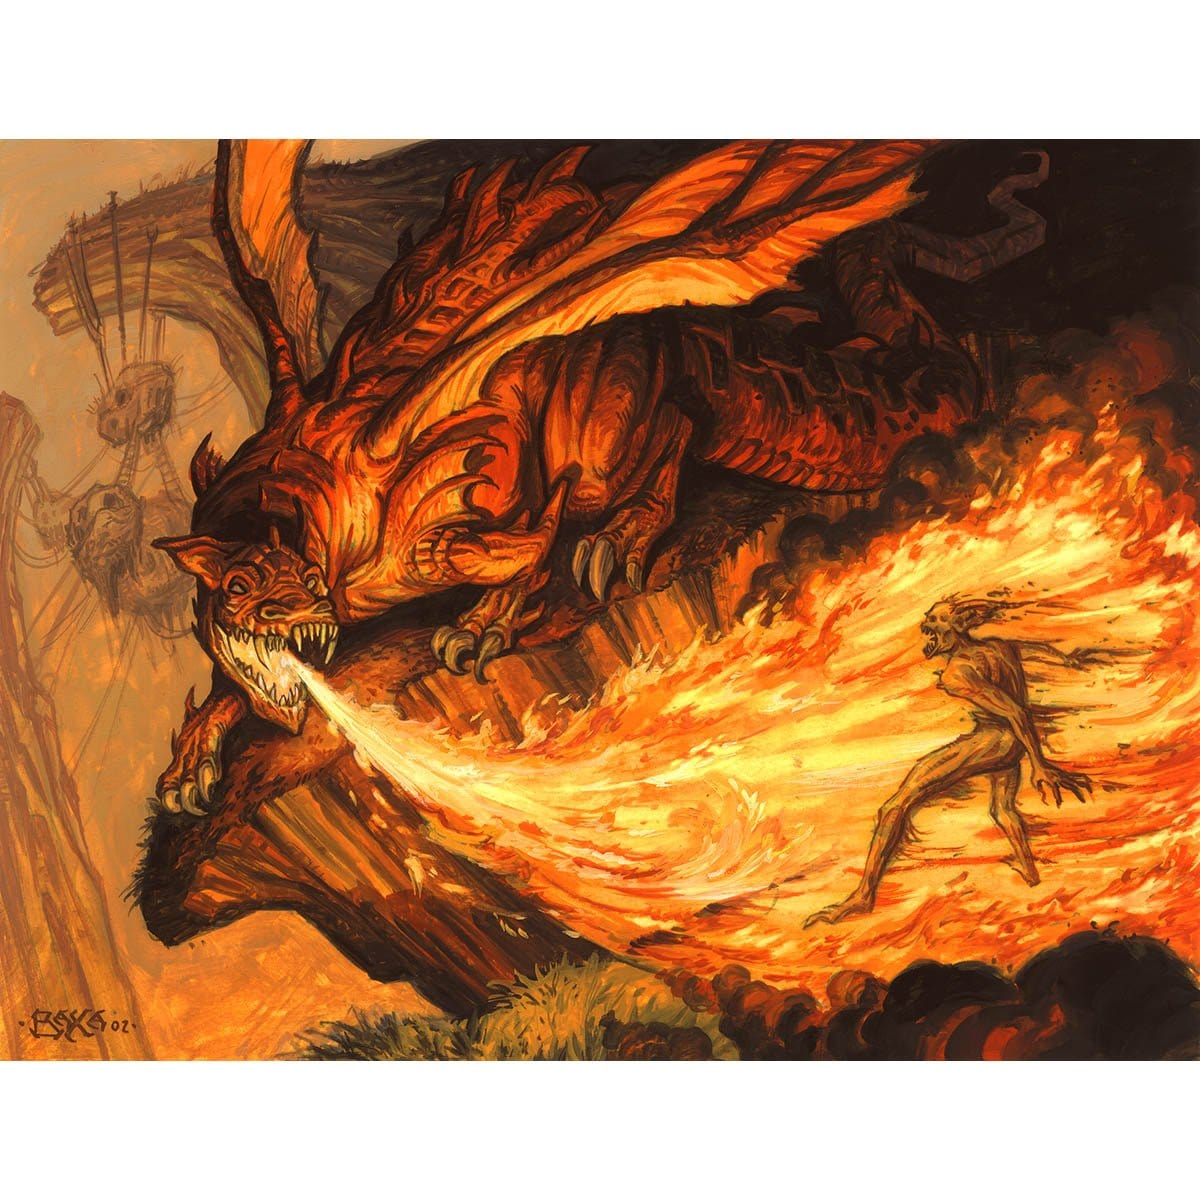 Torrent of Fire Print - Print - Original Magic Art - Accessories for Magic the Gathering and other card games